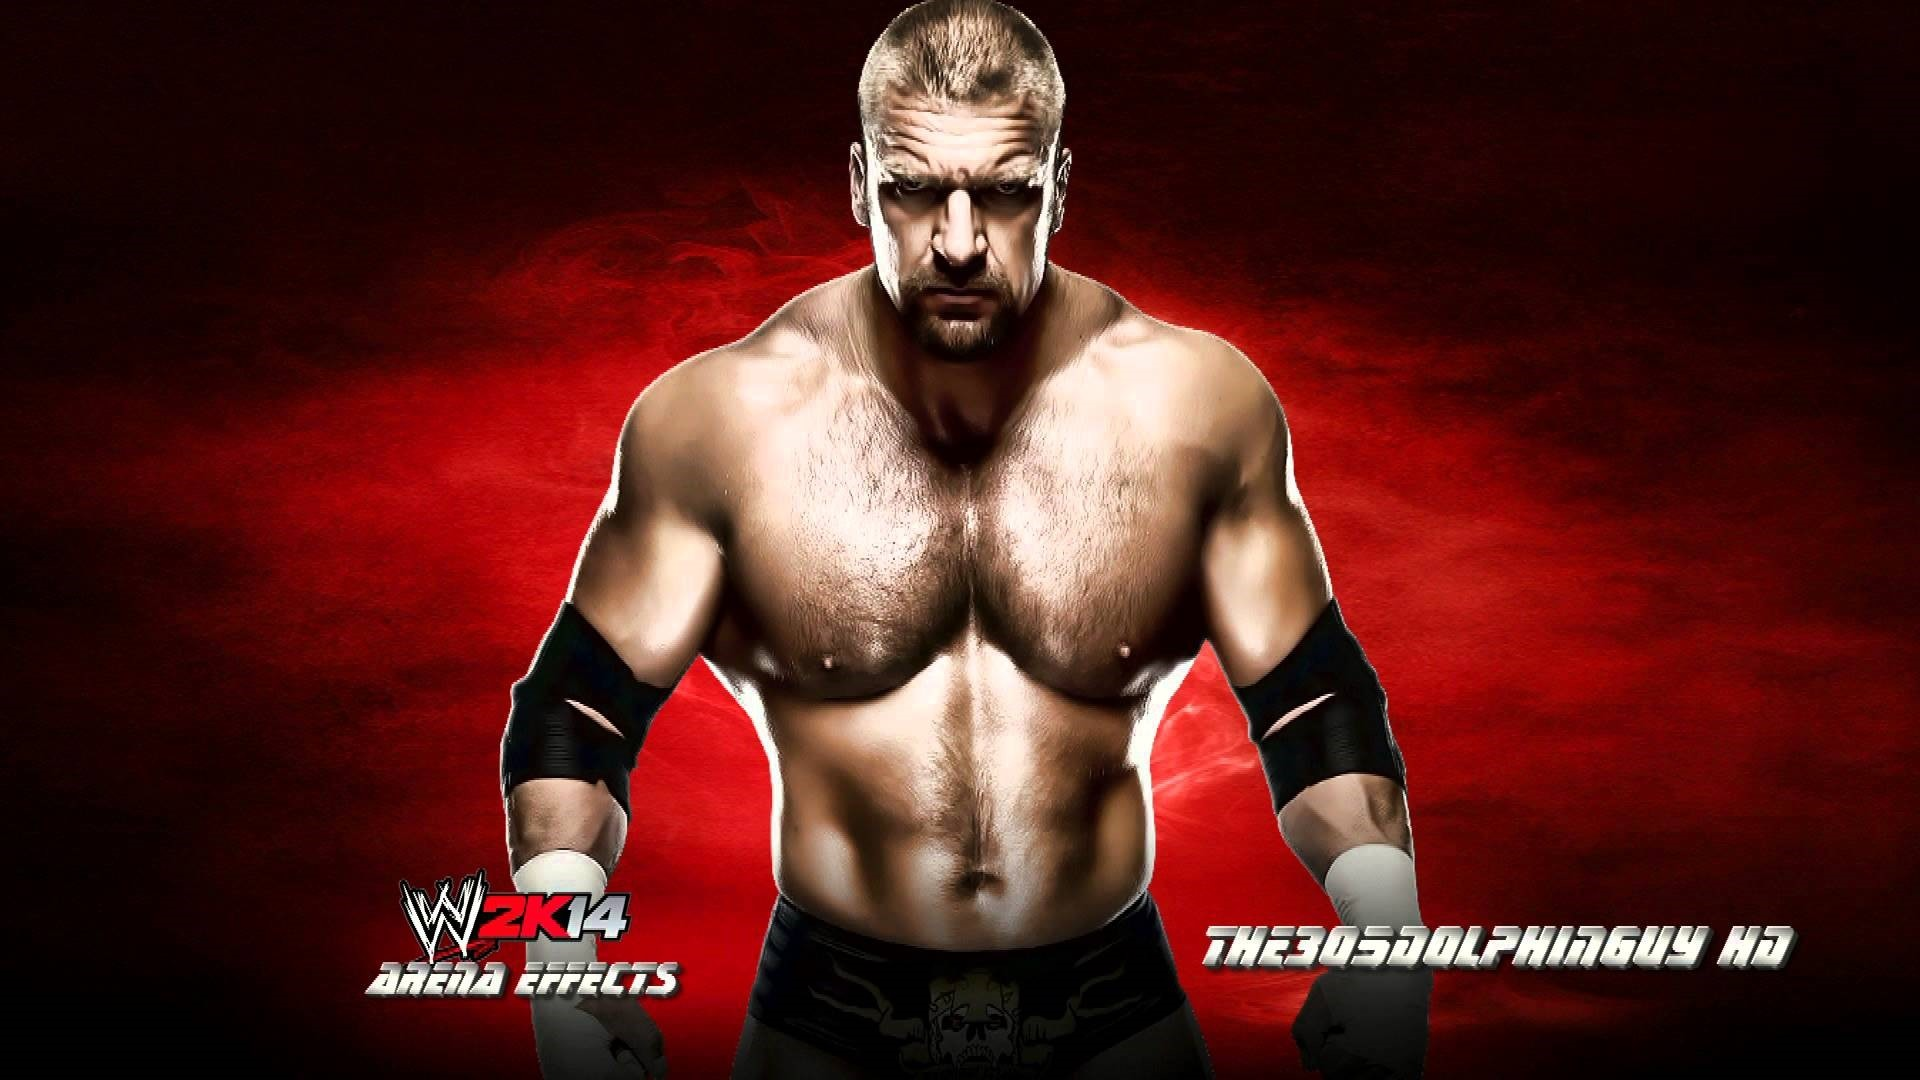 wwe superstars wallpapers ·①